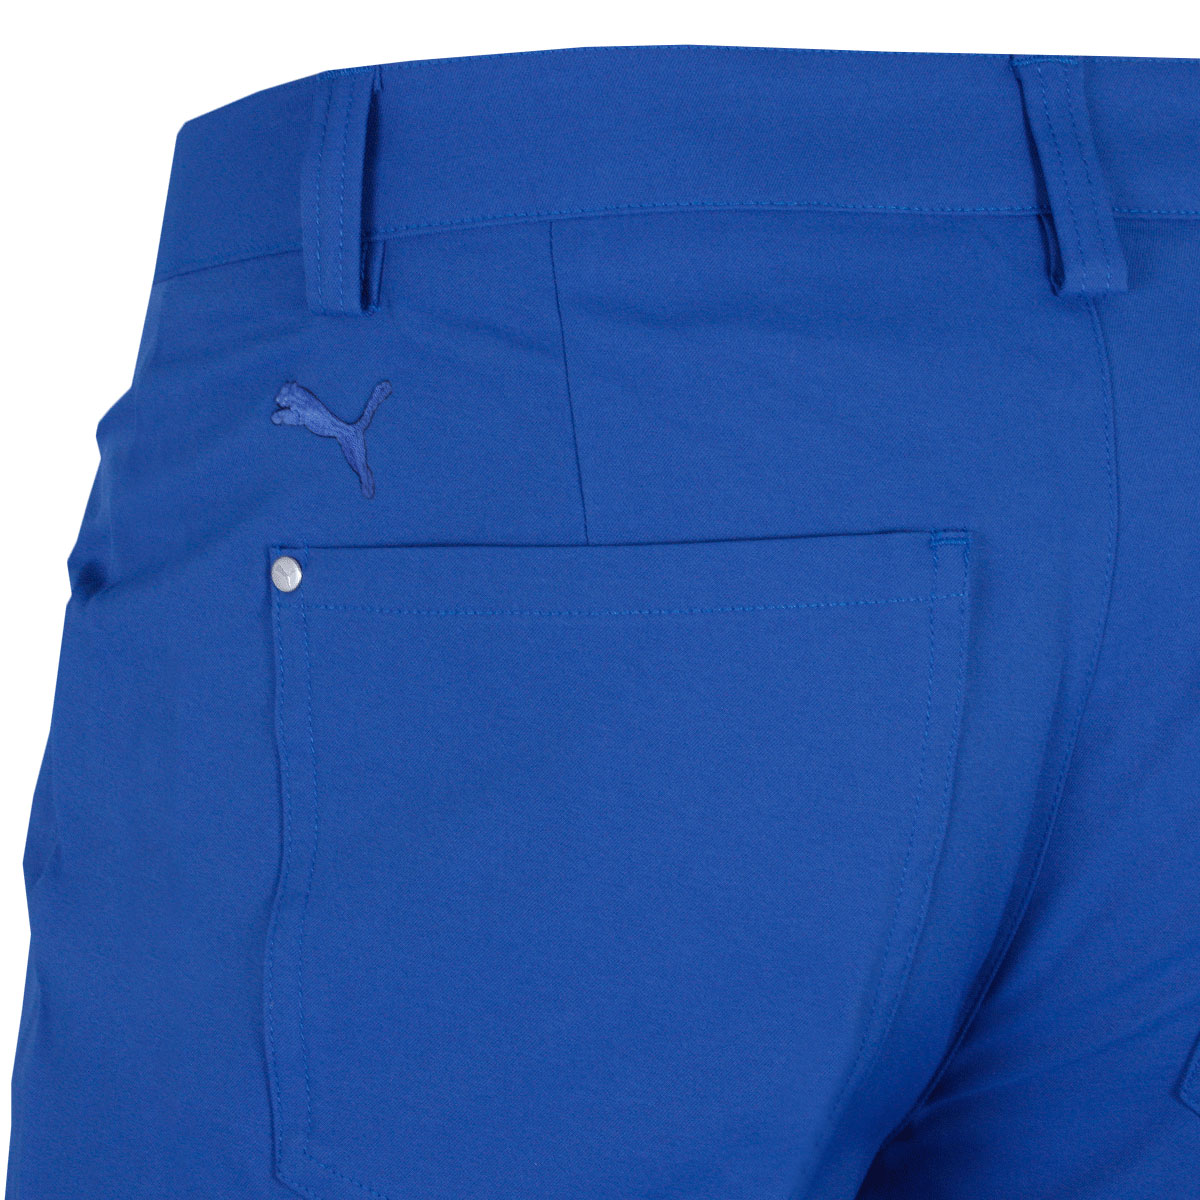 Puma-Golf-Mens-6-Pocket-Pant-DryCELL-Performance-Stretch-Trousers-47-OFF-RRP thumbnail 10